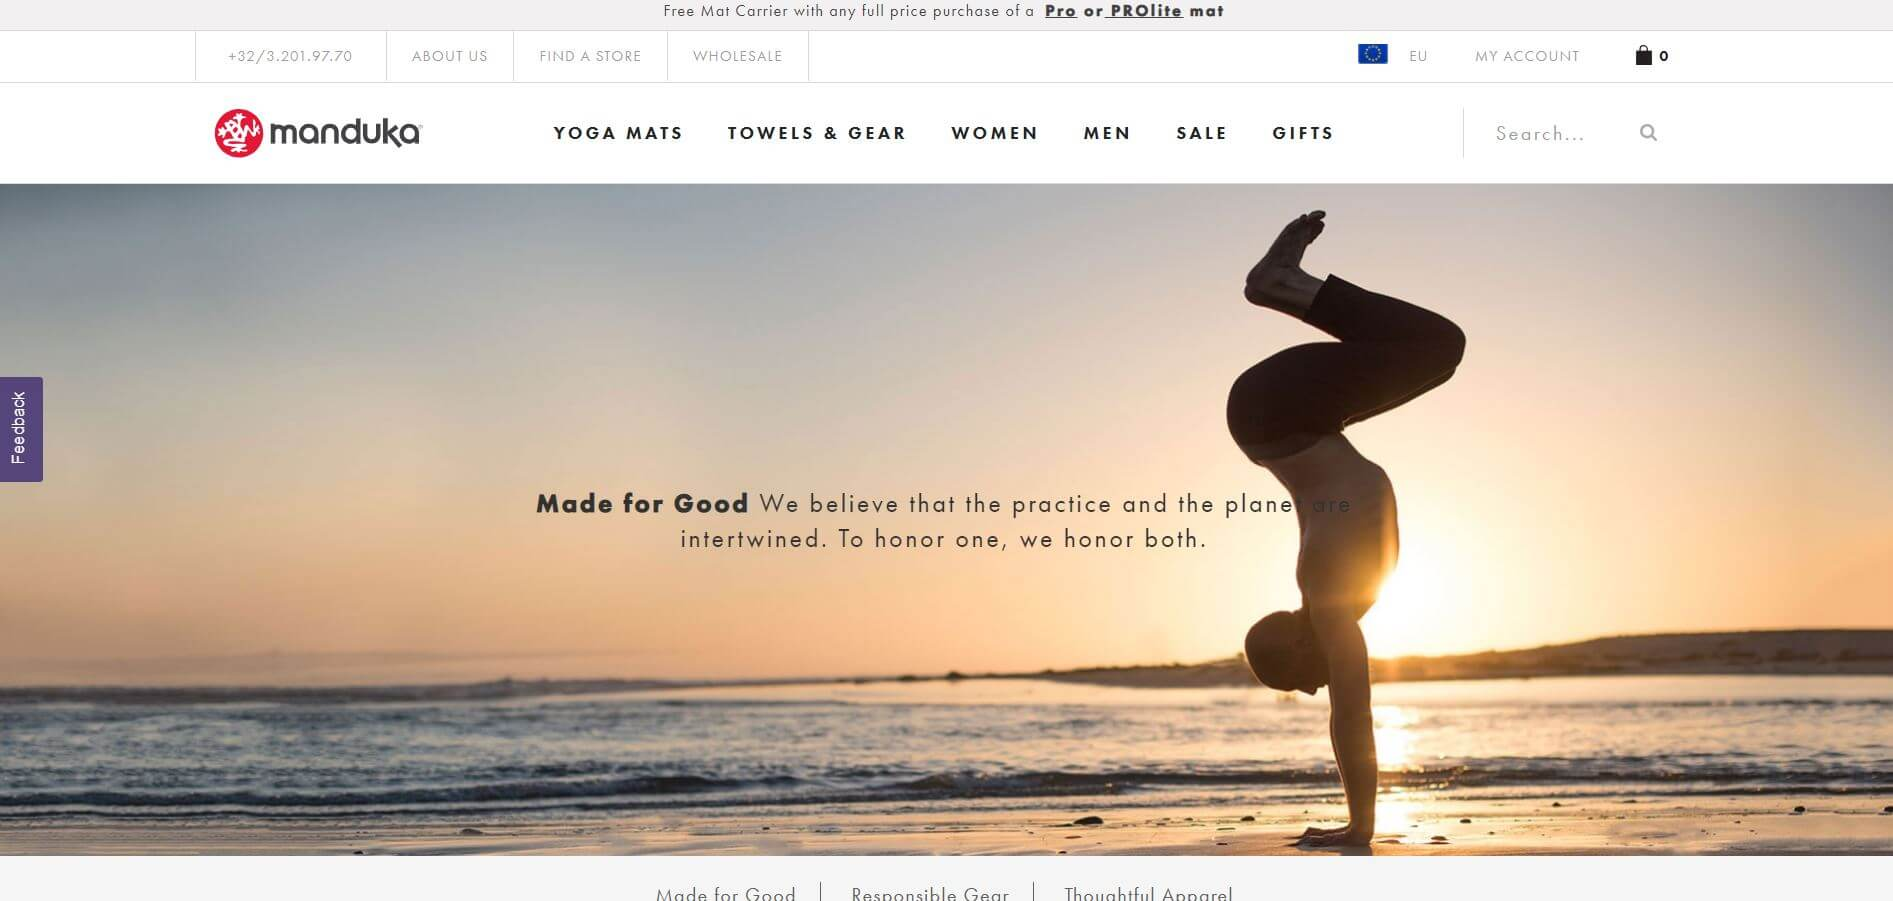 manduka Yoga Screenshot